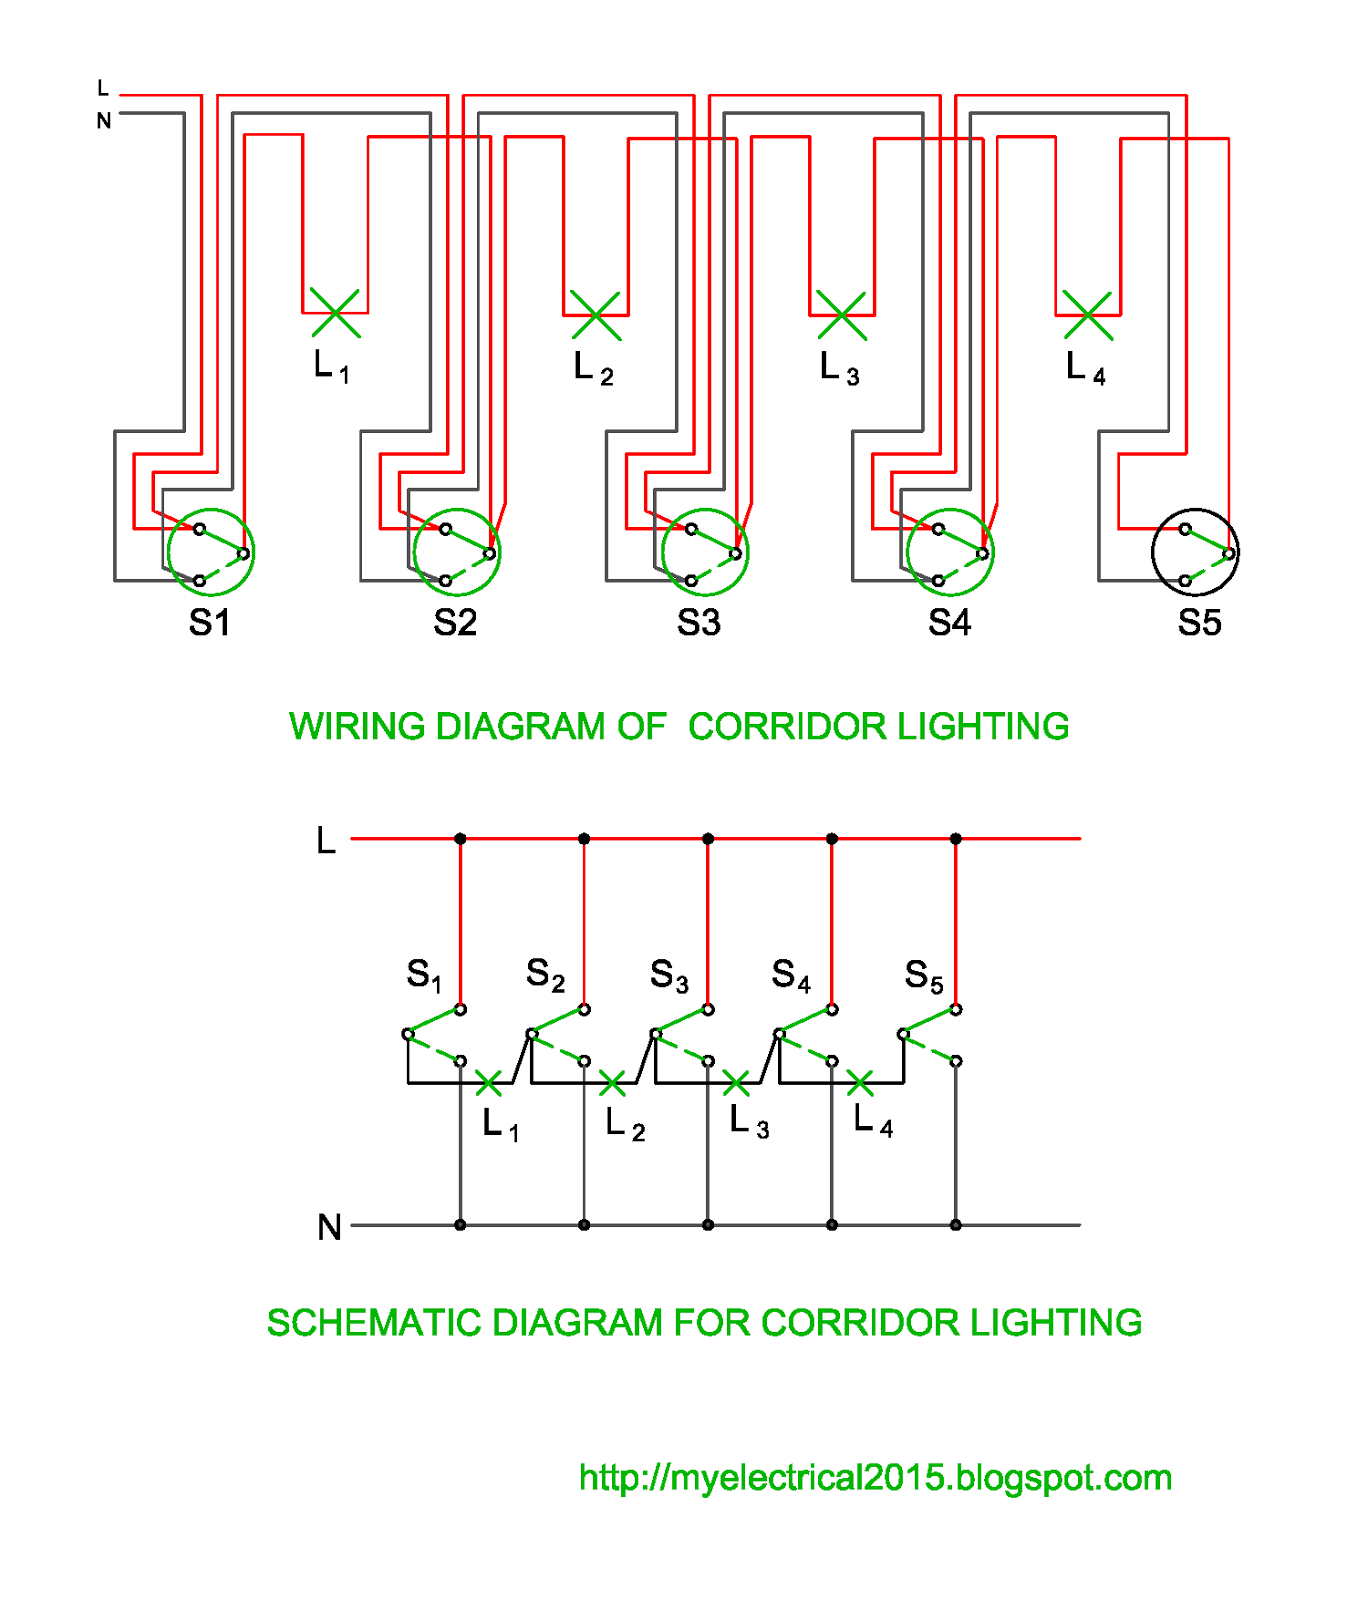 medium resolution of wiring and schematic diagram of corridor lighting electrical corridor light wiring diagram